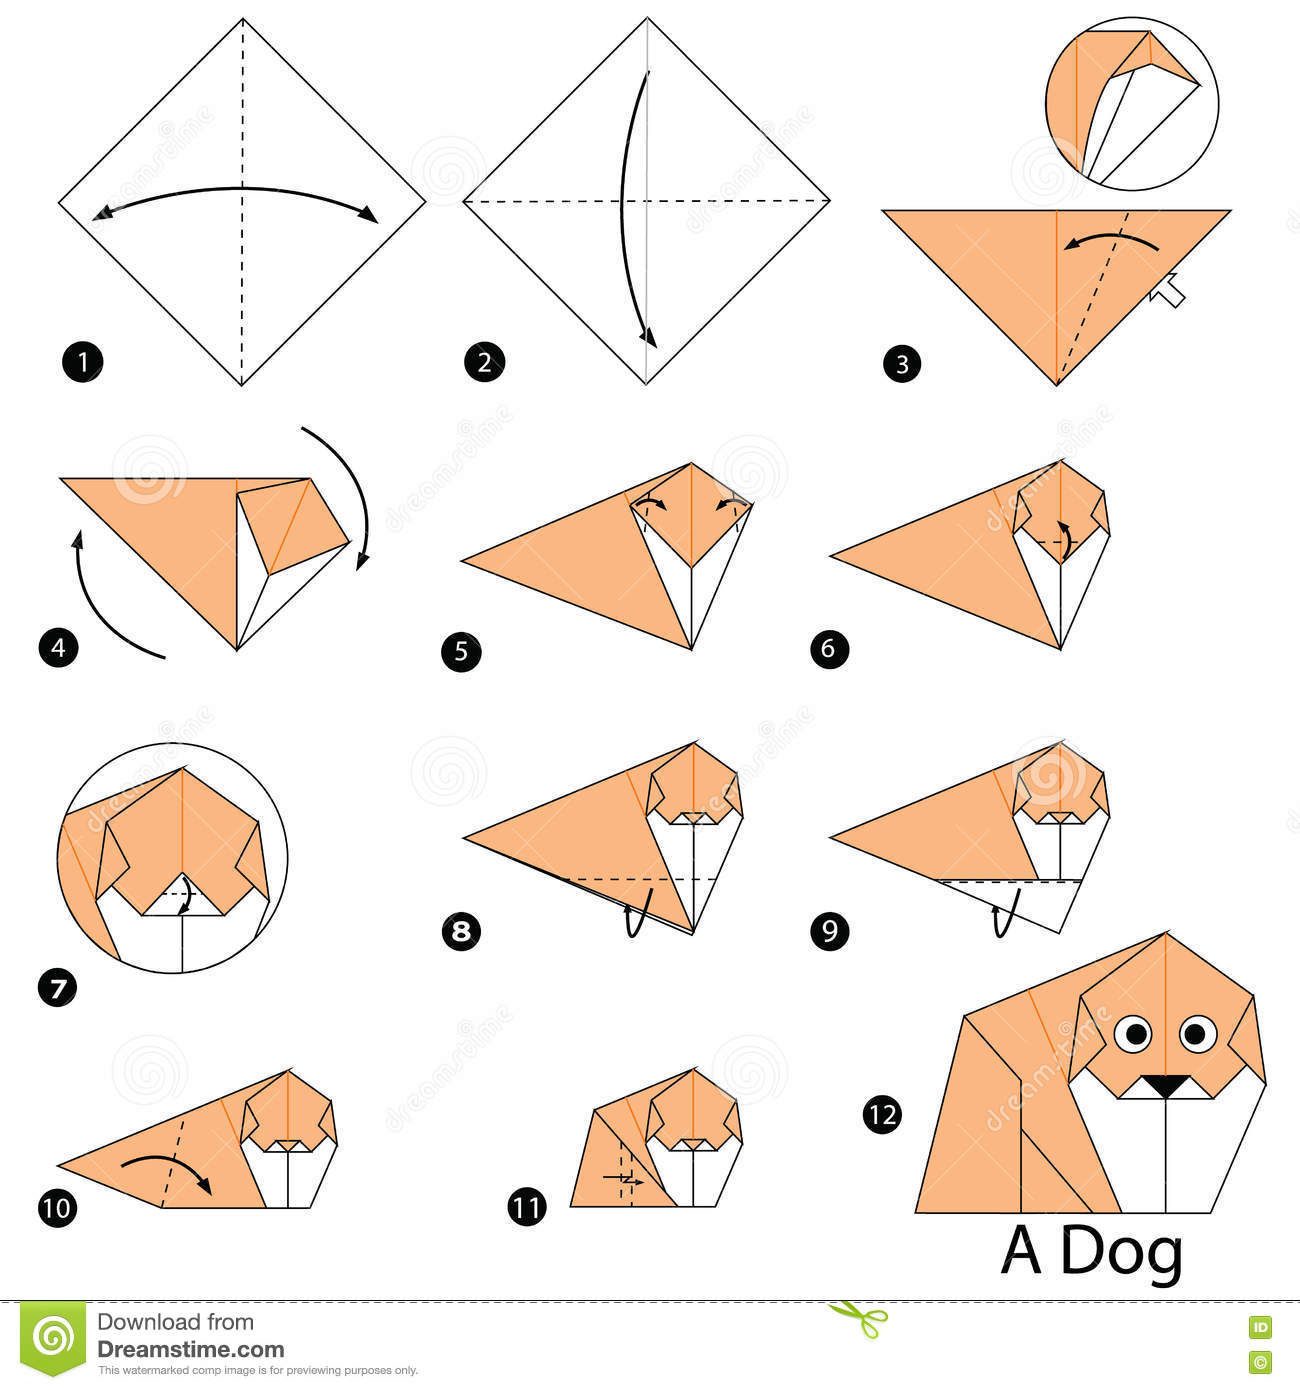 Origami dog face how to origami -  Step By Step Instructions How To Make Origami A Dog